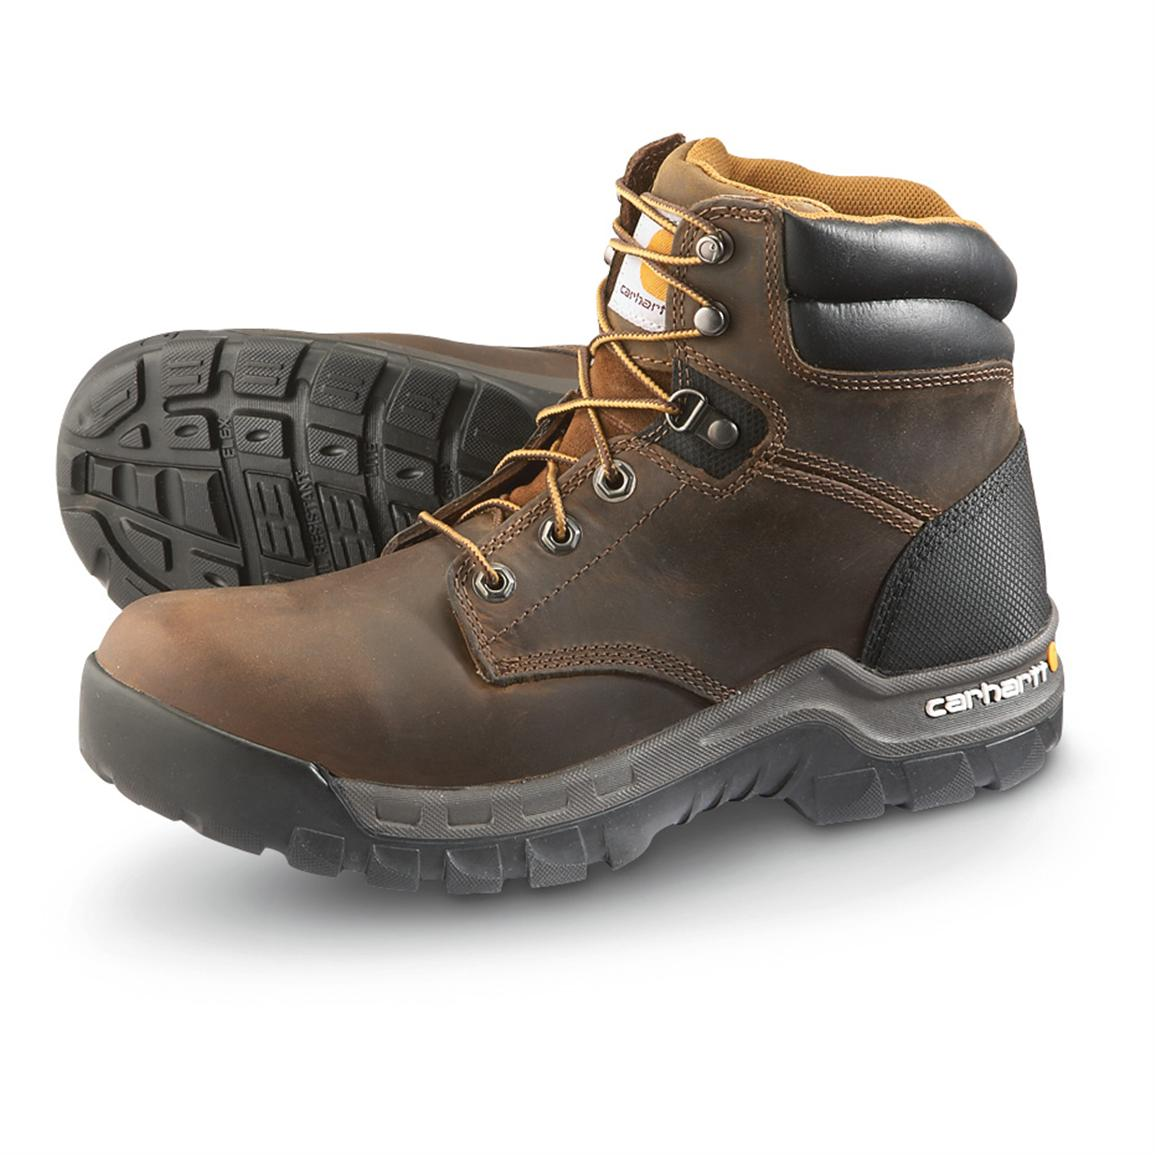 Carhartt Rugged Work Boots, Brown